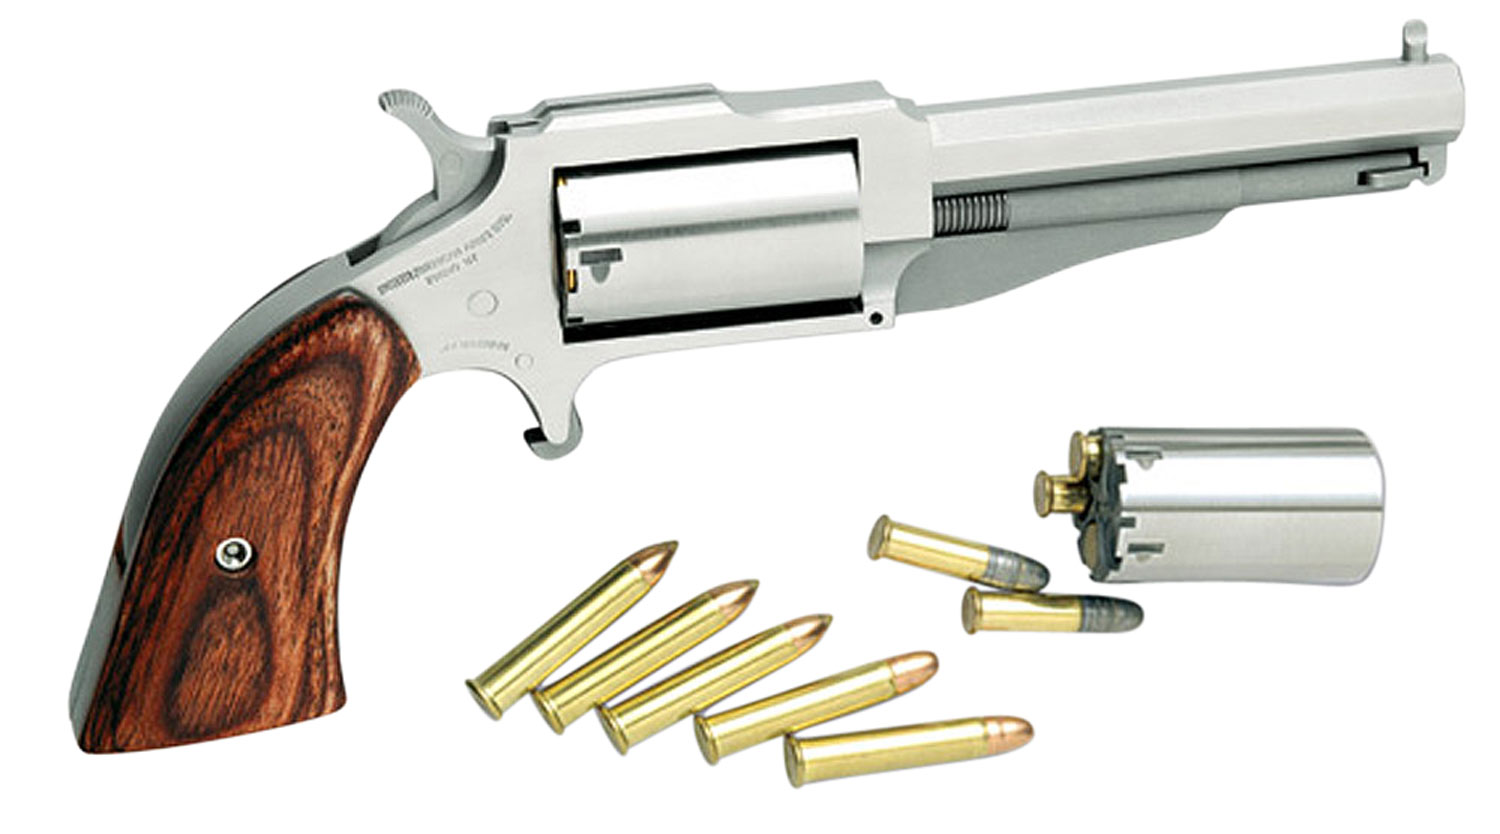 Colt SP300237 Colt Government 45 ACP 8rd Stainless Finish